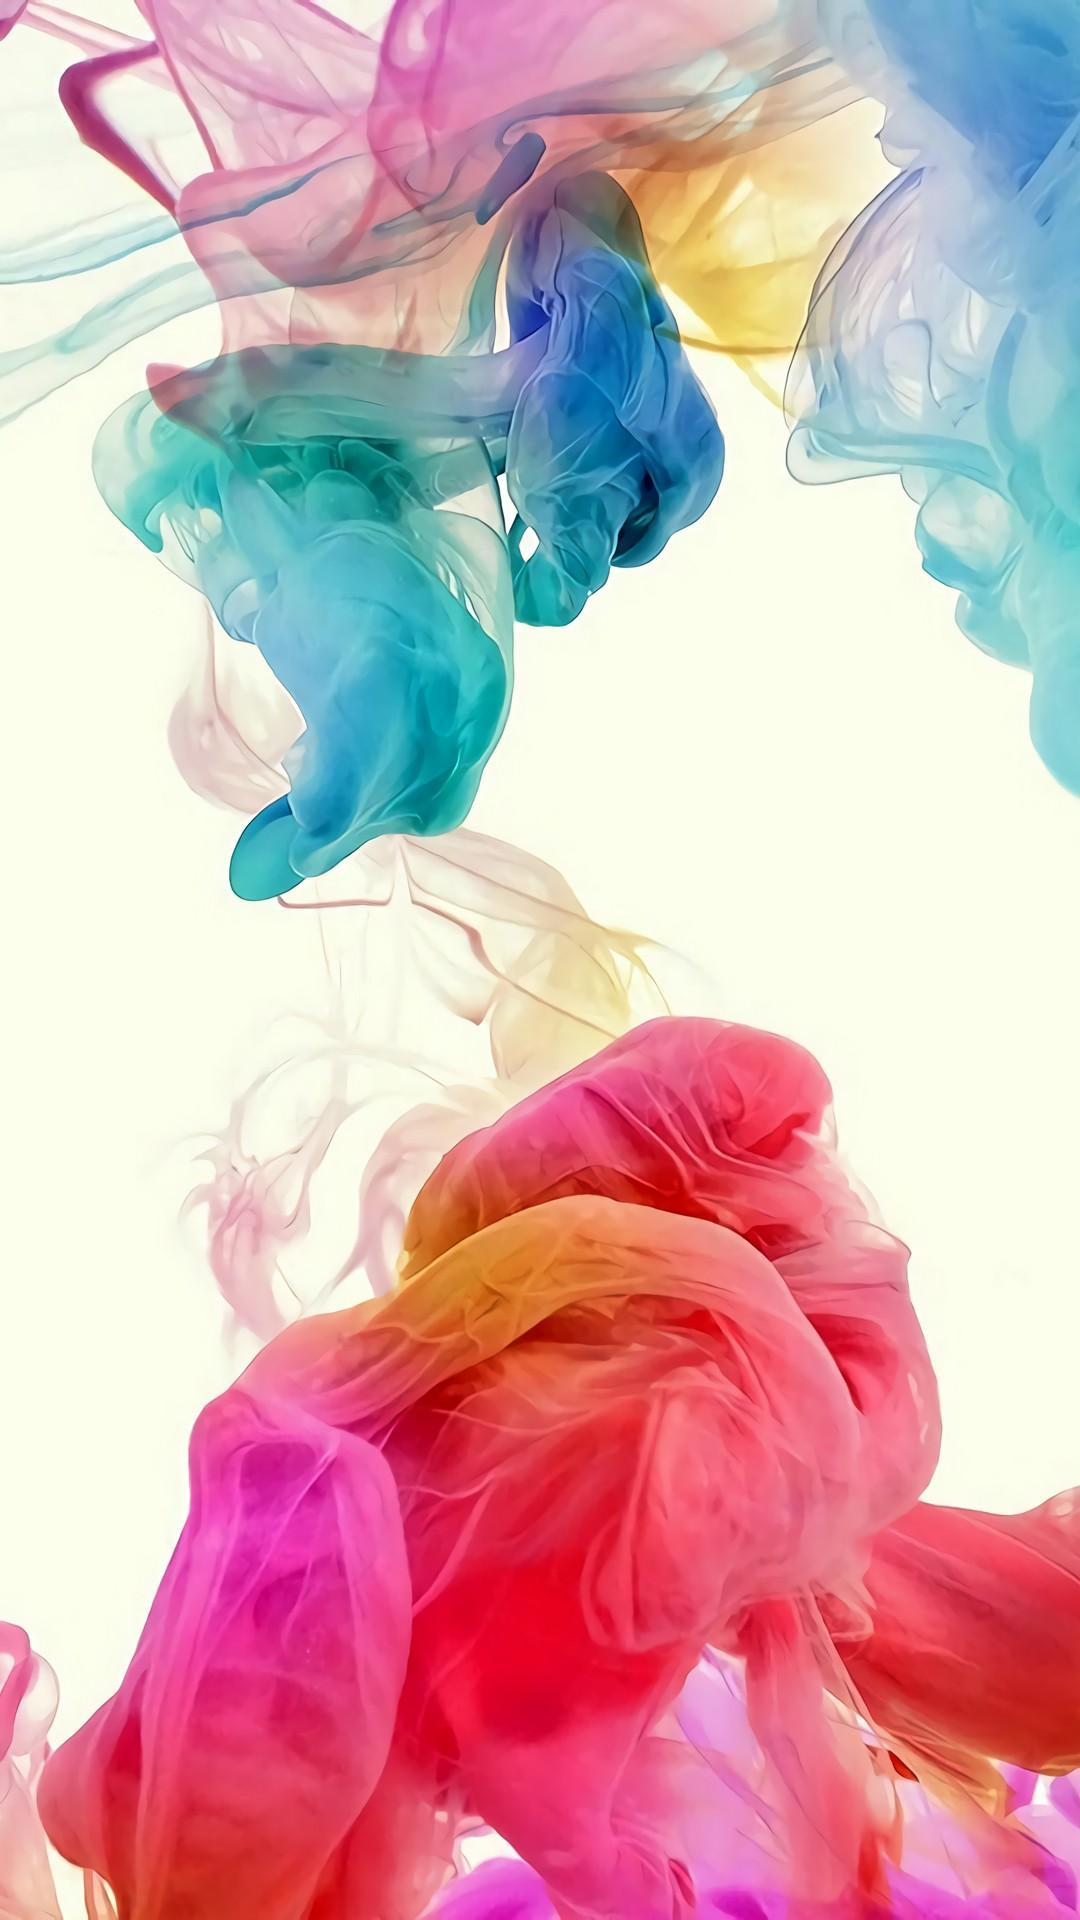 HD Wallpaper for Galaxy M10 M20 M30 for Android   APK Download 1080x1920